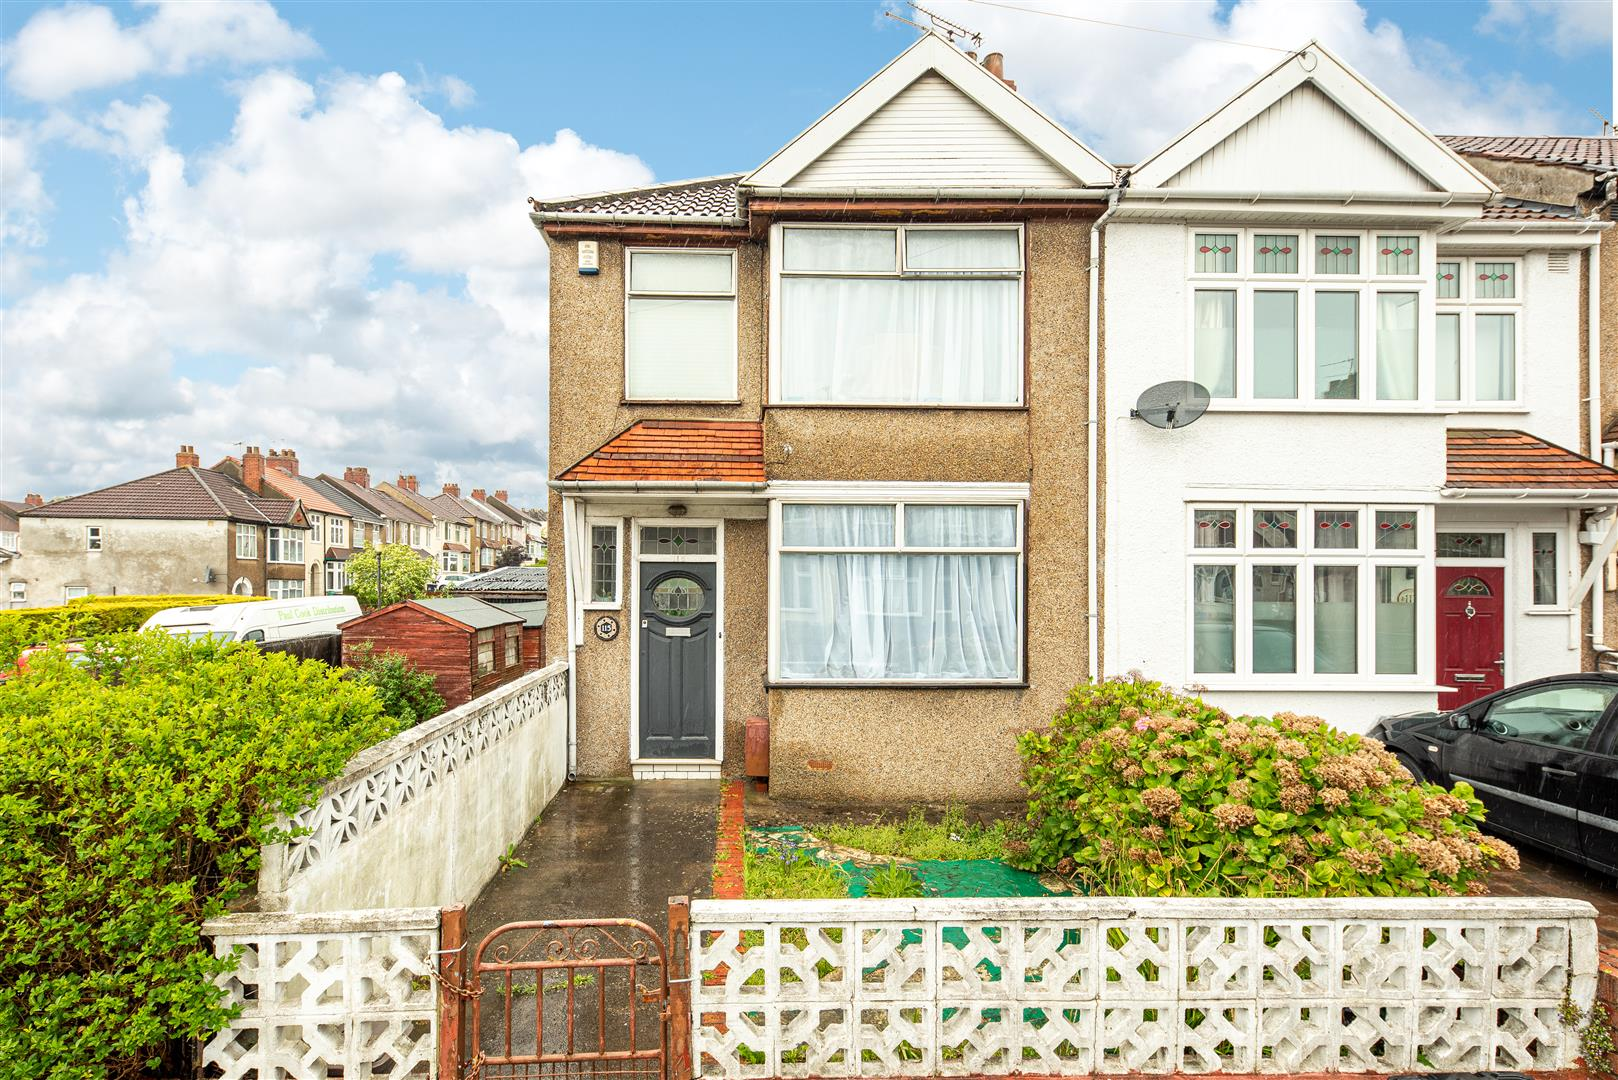 4 bed house to rent in Keys Avenue, Bristol - Property Image 1